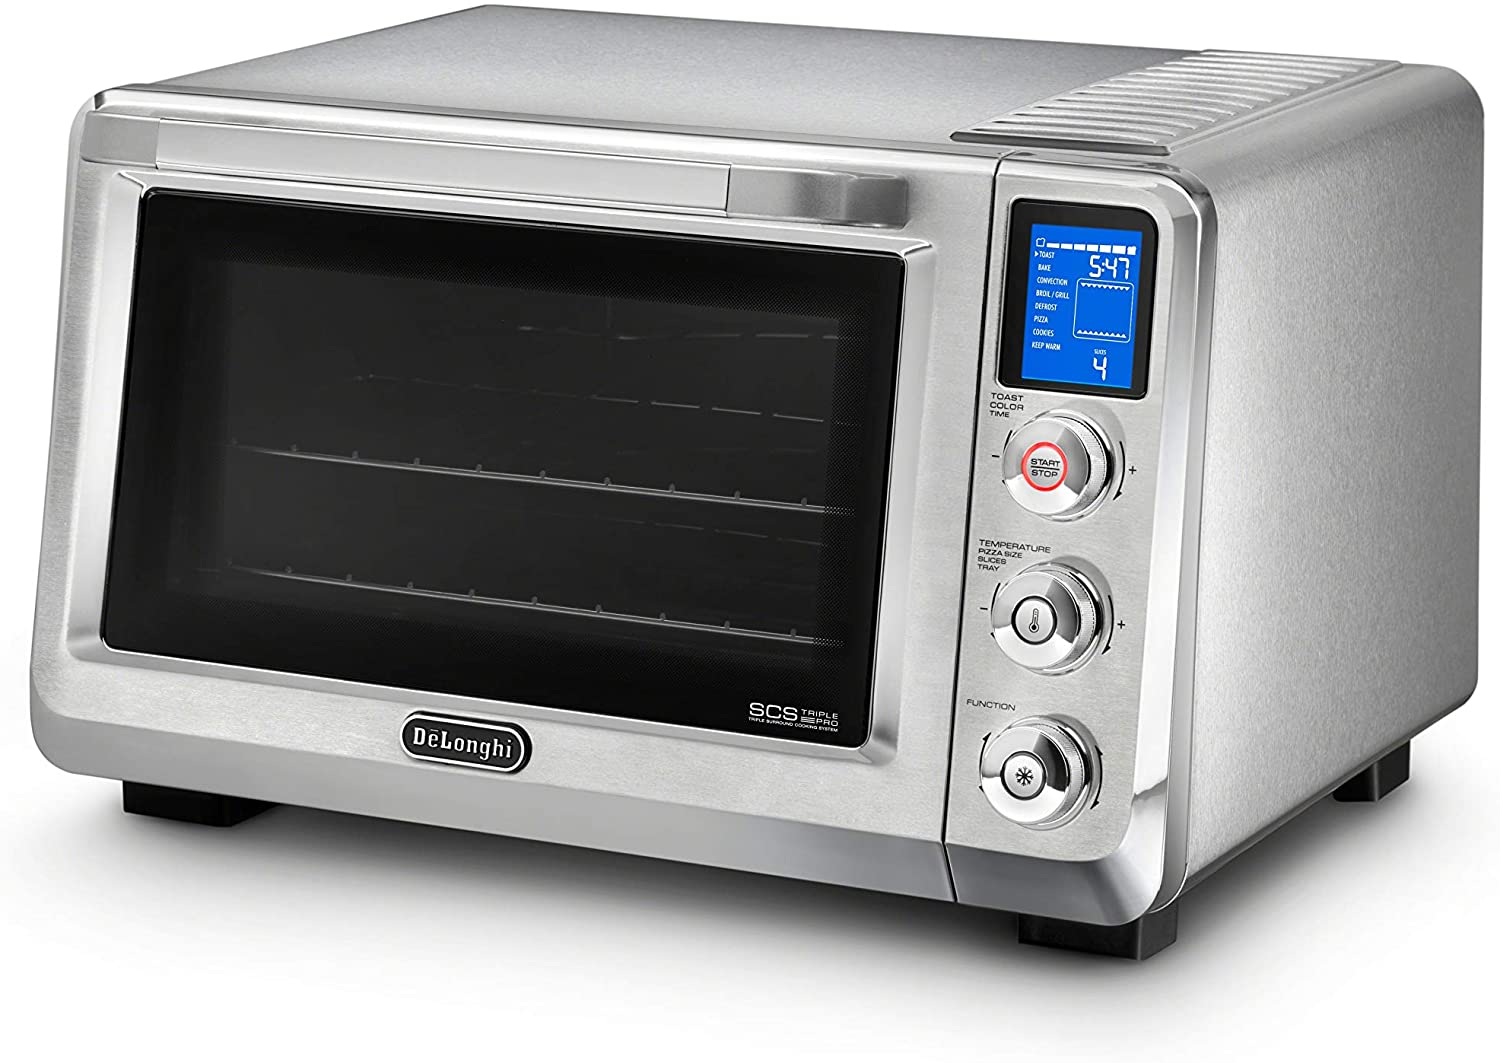 DeLonghi EO241250M Livenza Countertop Convection Oven